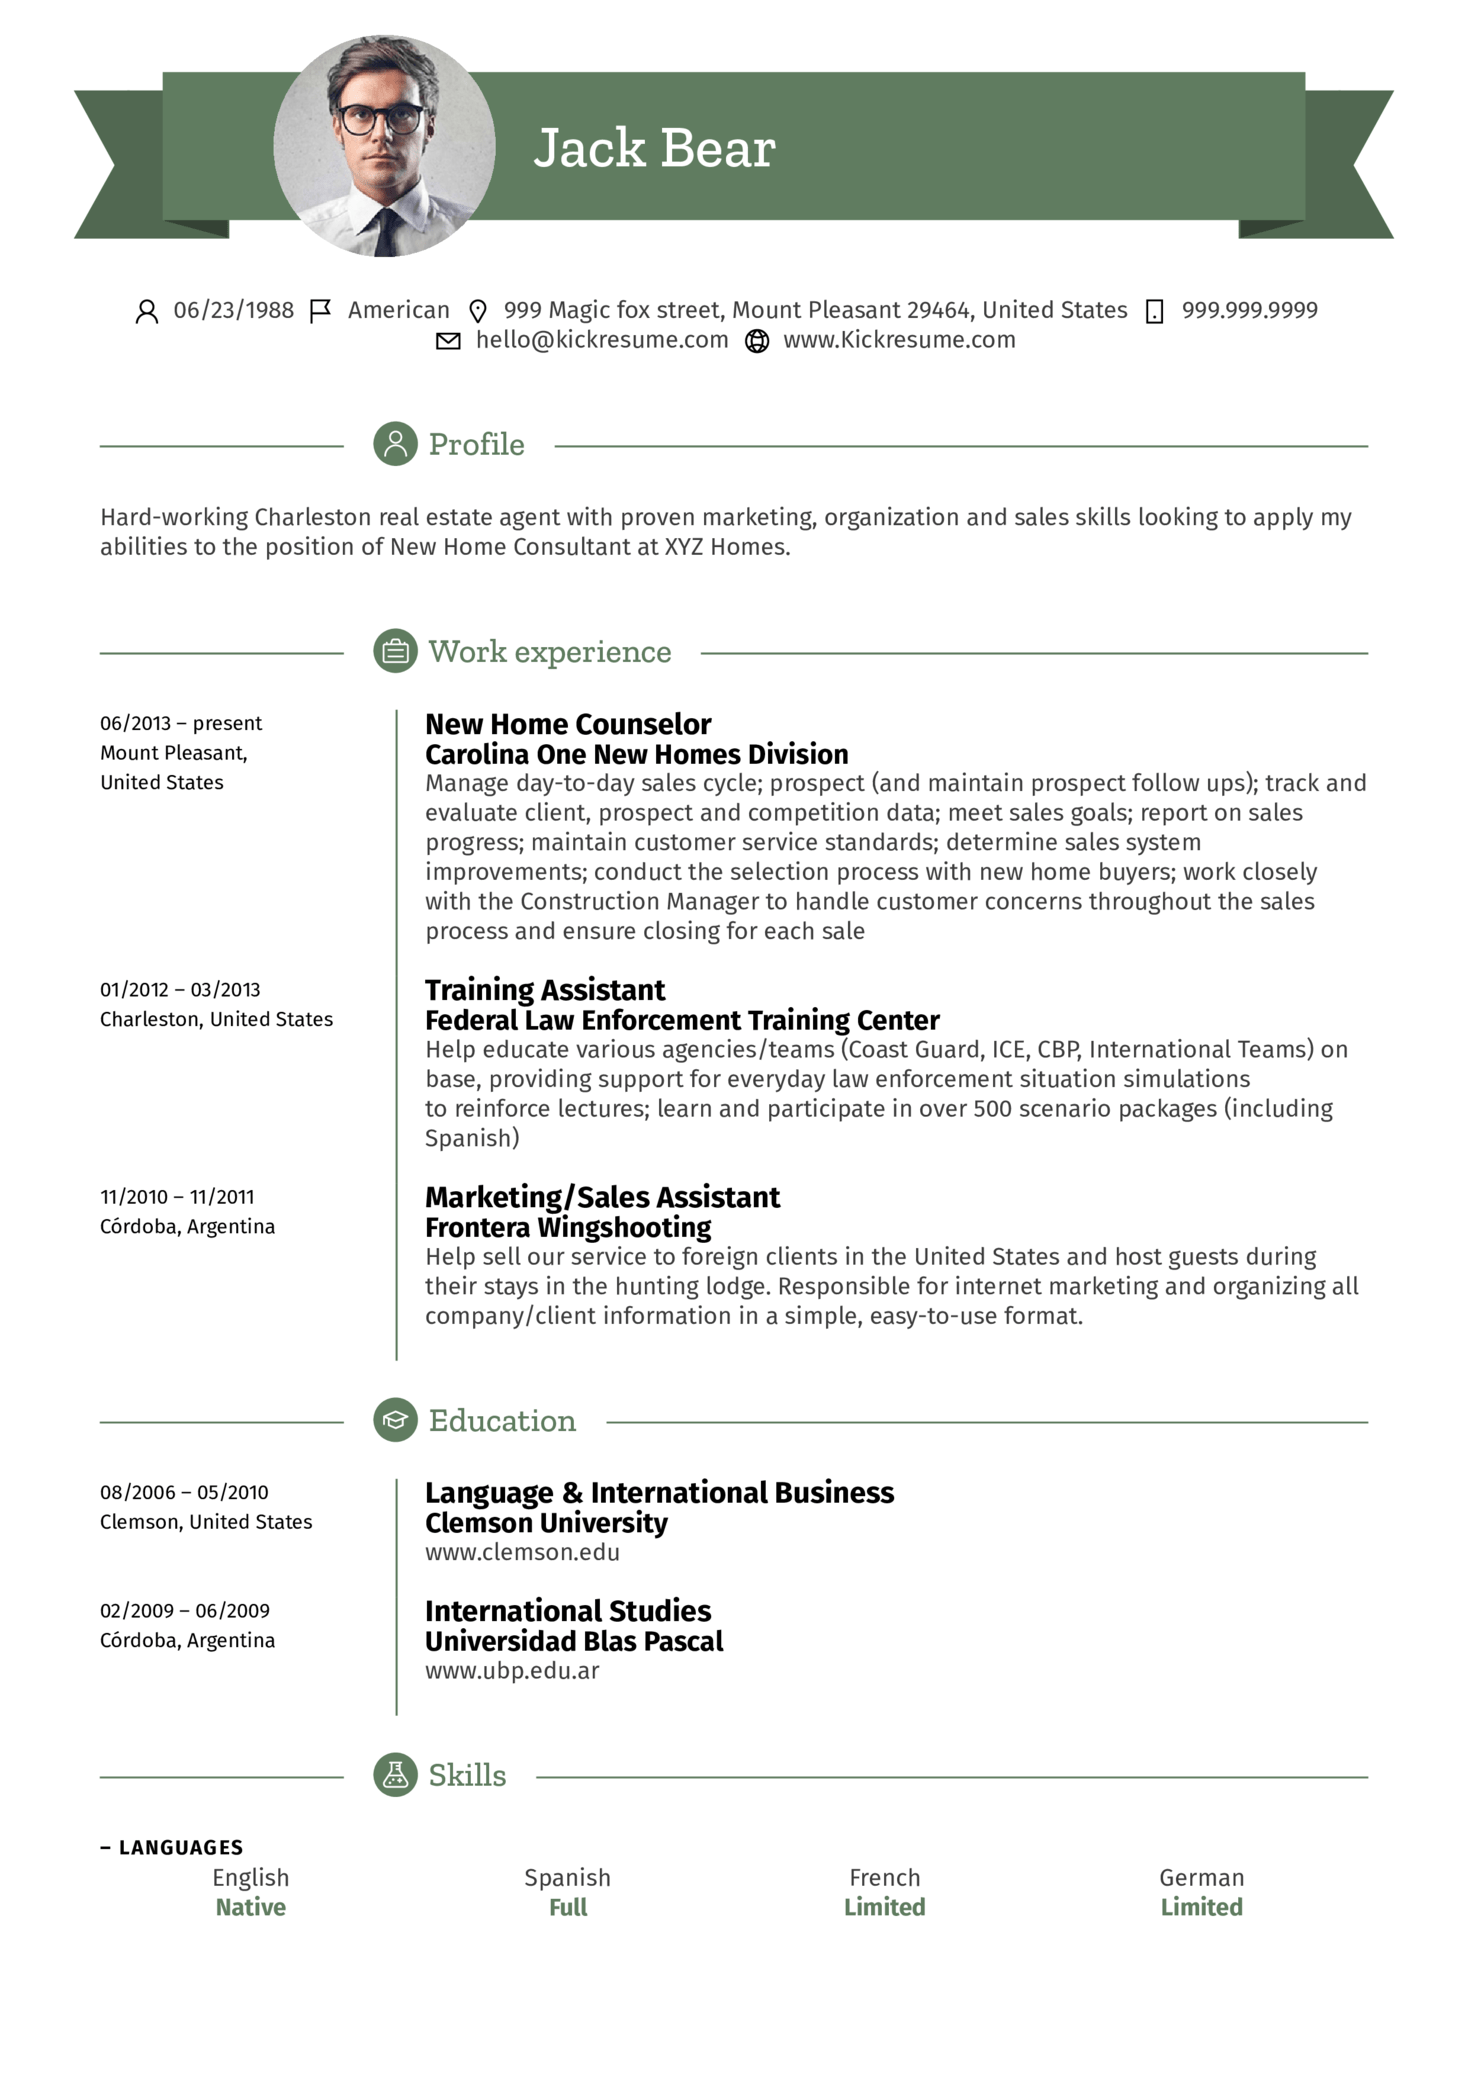 Real Estate Resume Samples Career Help Center - Real estate resume samples